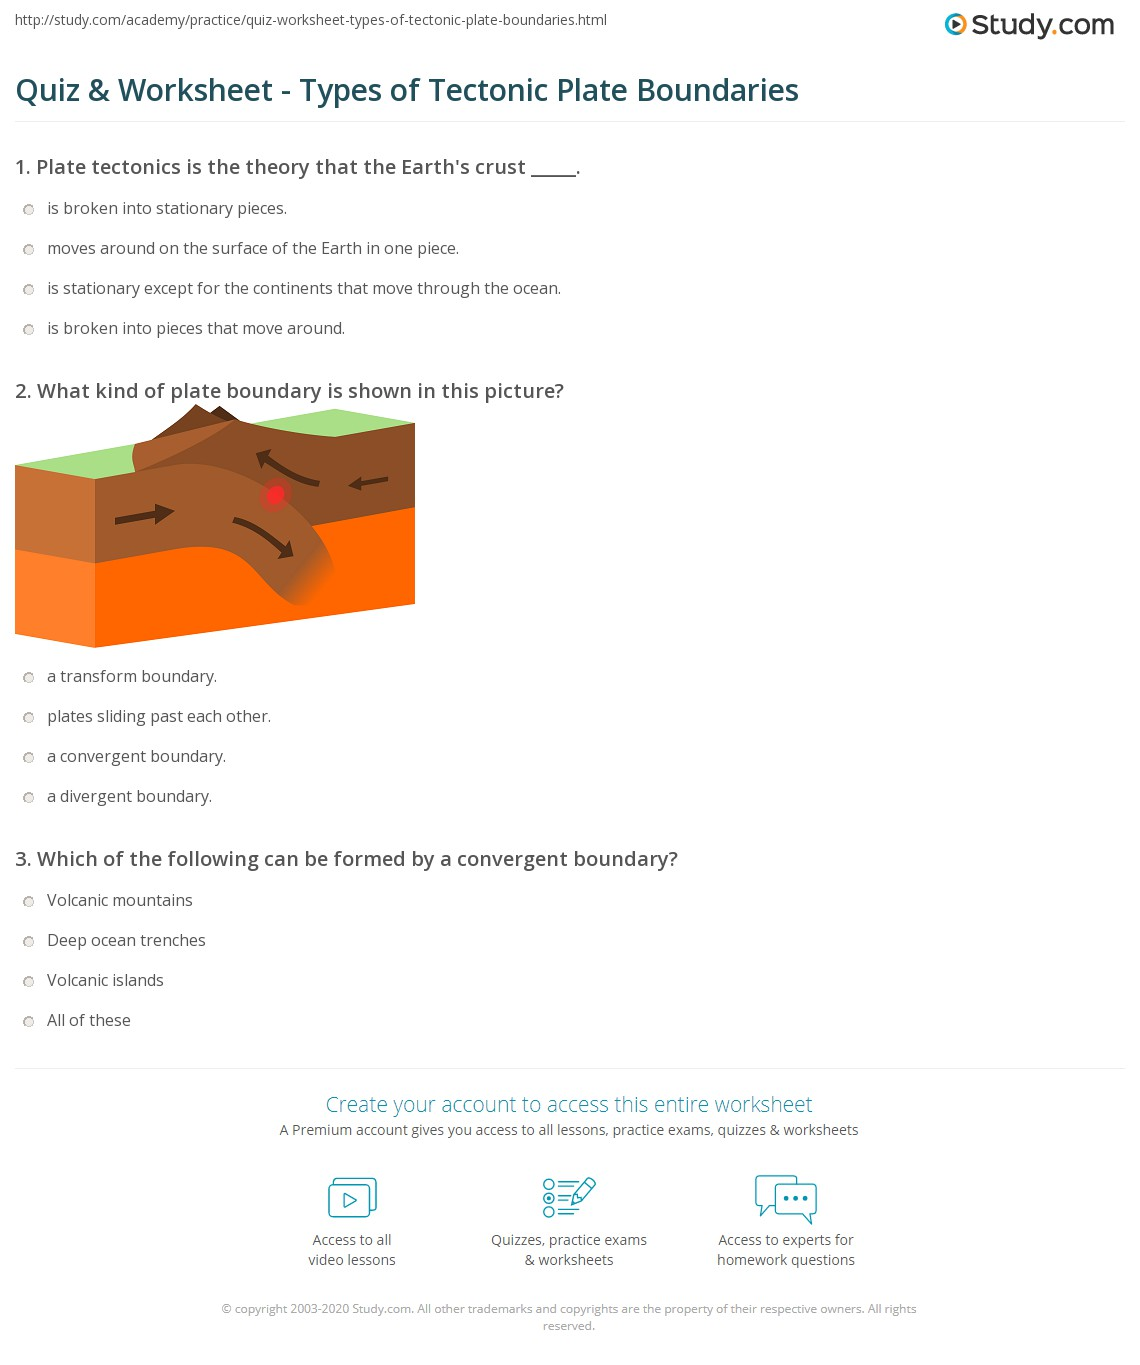 plate tectonics worksheet answers calleveryonedaveday. Black Bedroom Furniture Sets. Home Design Ideas